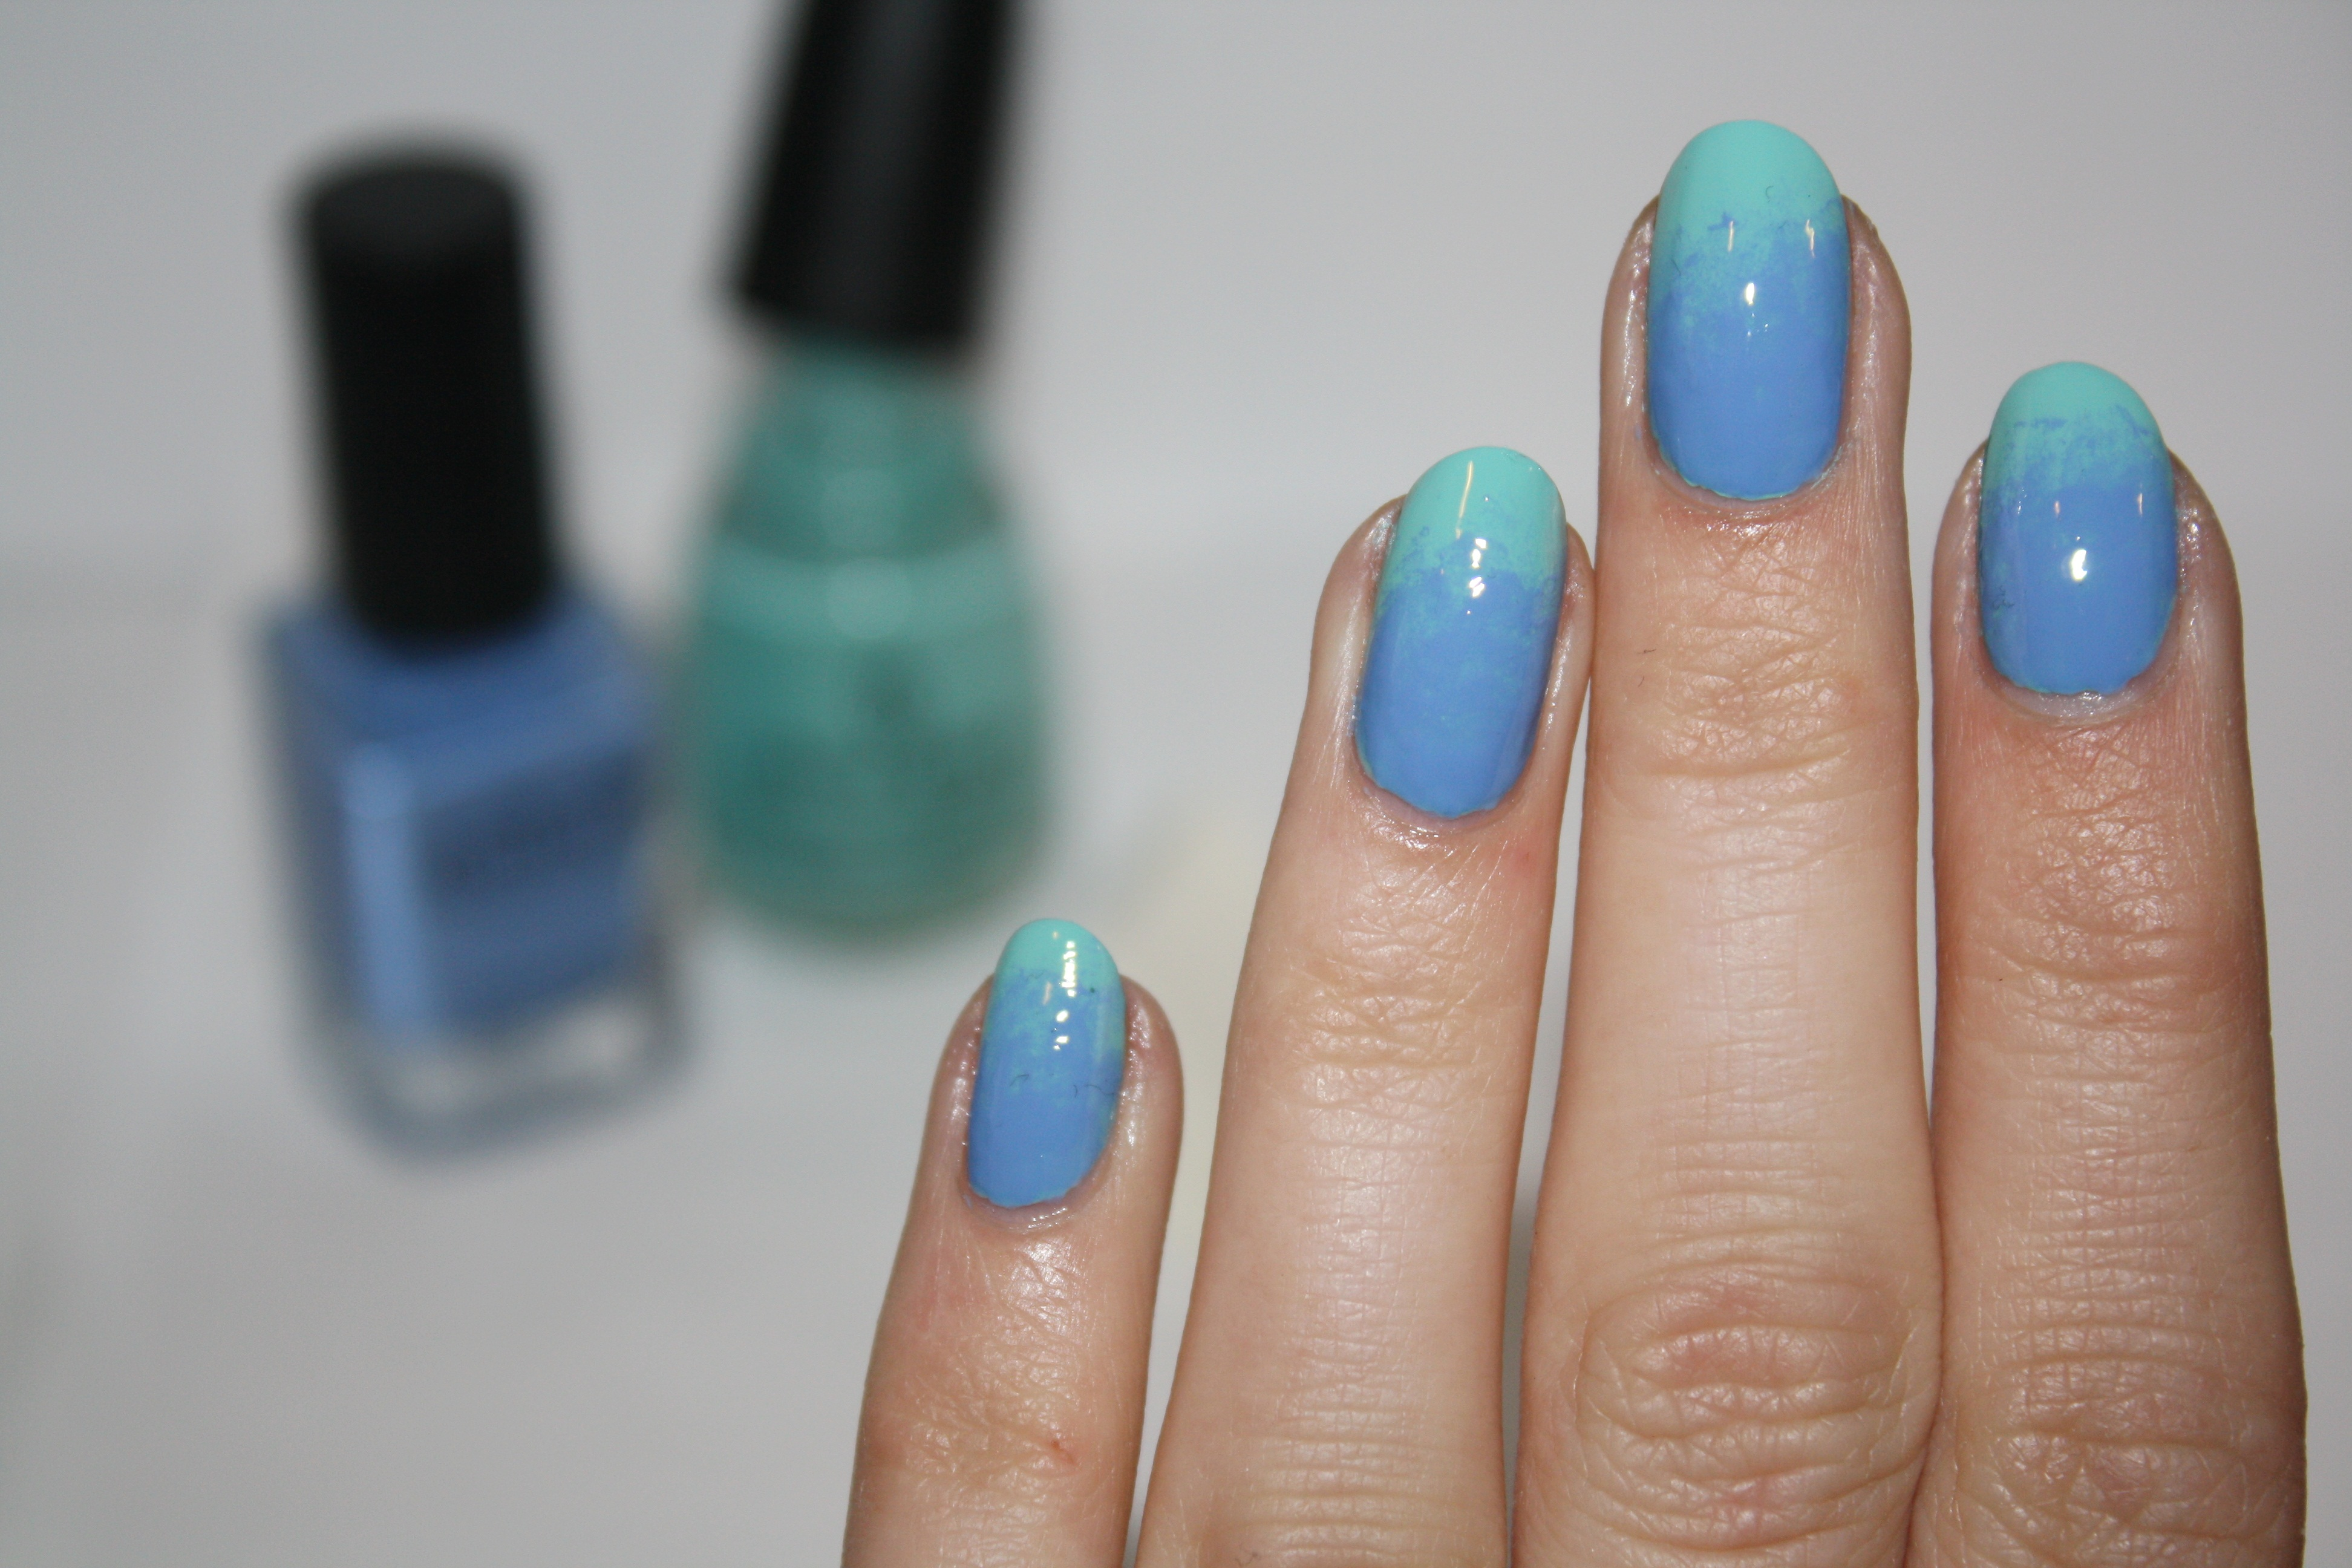 Fine Ysl Nail Polish Review Tall Opi Glitter Nail Polish Names Clean Organic Nail Polish Ingredients Permeable Nail Polish Old Nails Art Stamping DarkSimple Nail Art Ideas For Beginners Two Color Nail Art   Emsilog